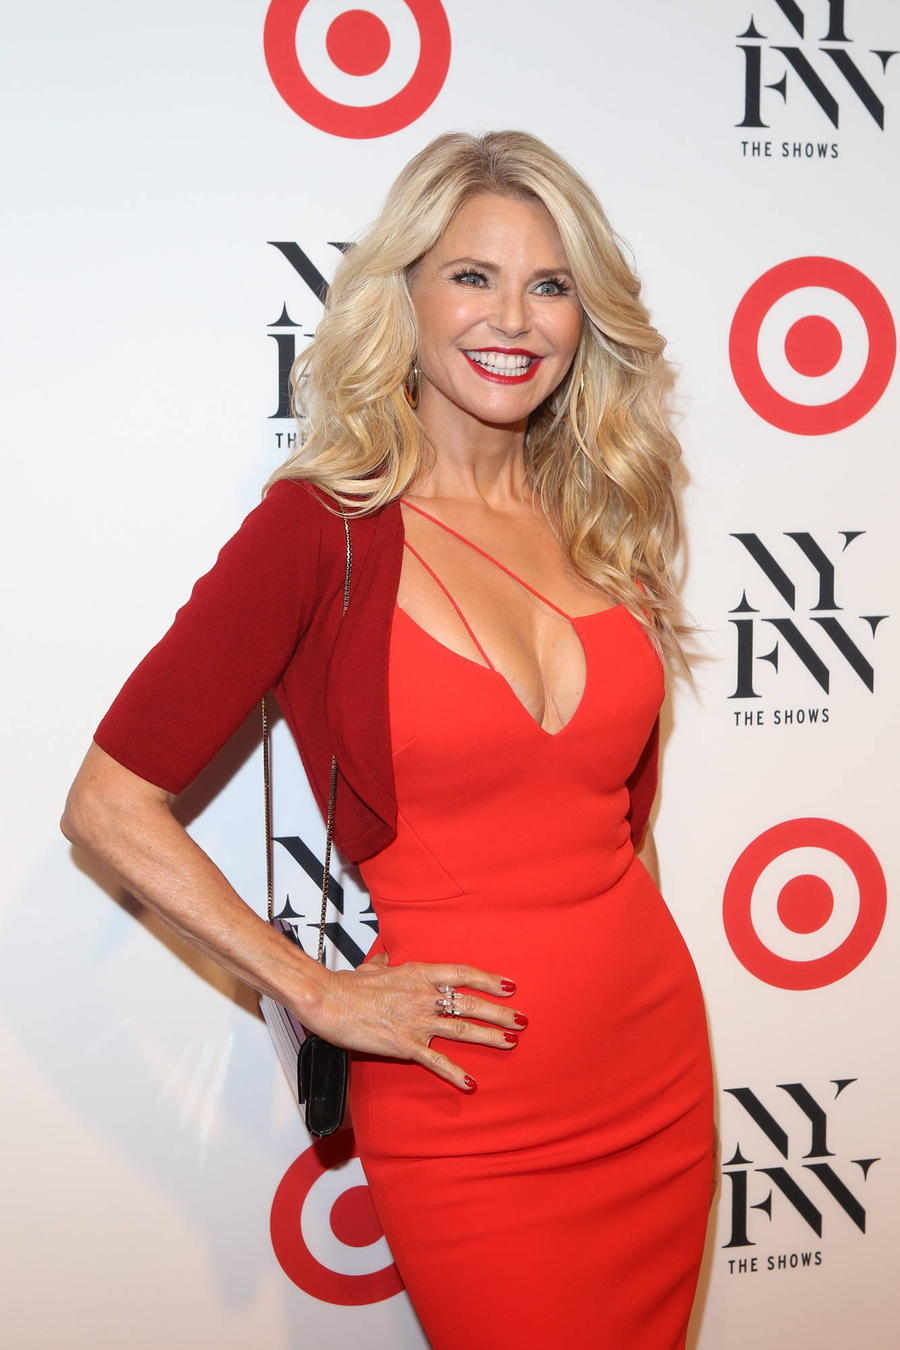 Christie Brinkley Returns To Cover Of Sports Illustrated Swimsuit Issue